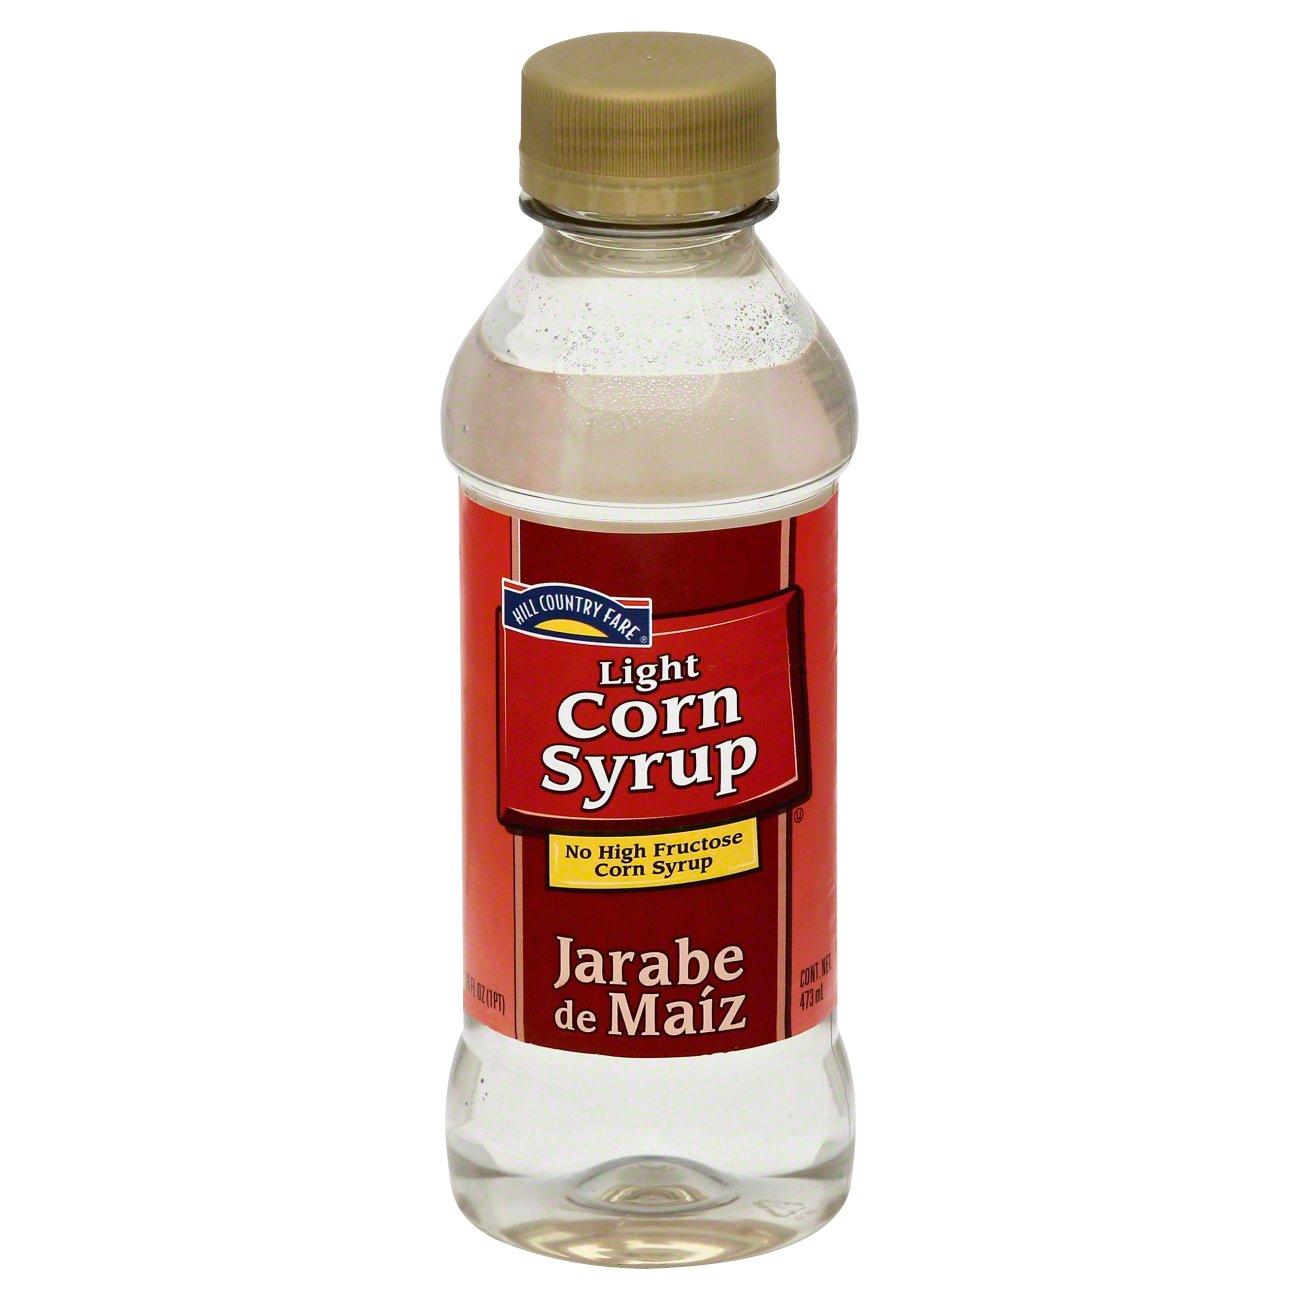 Syrup - Shop HEB Everyday Low Prices Online